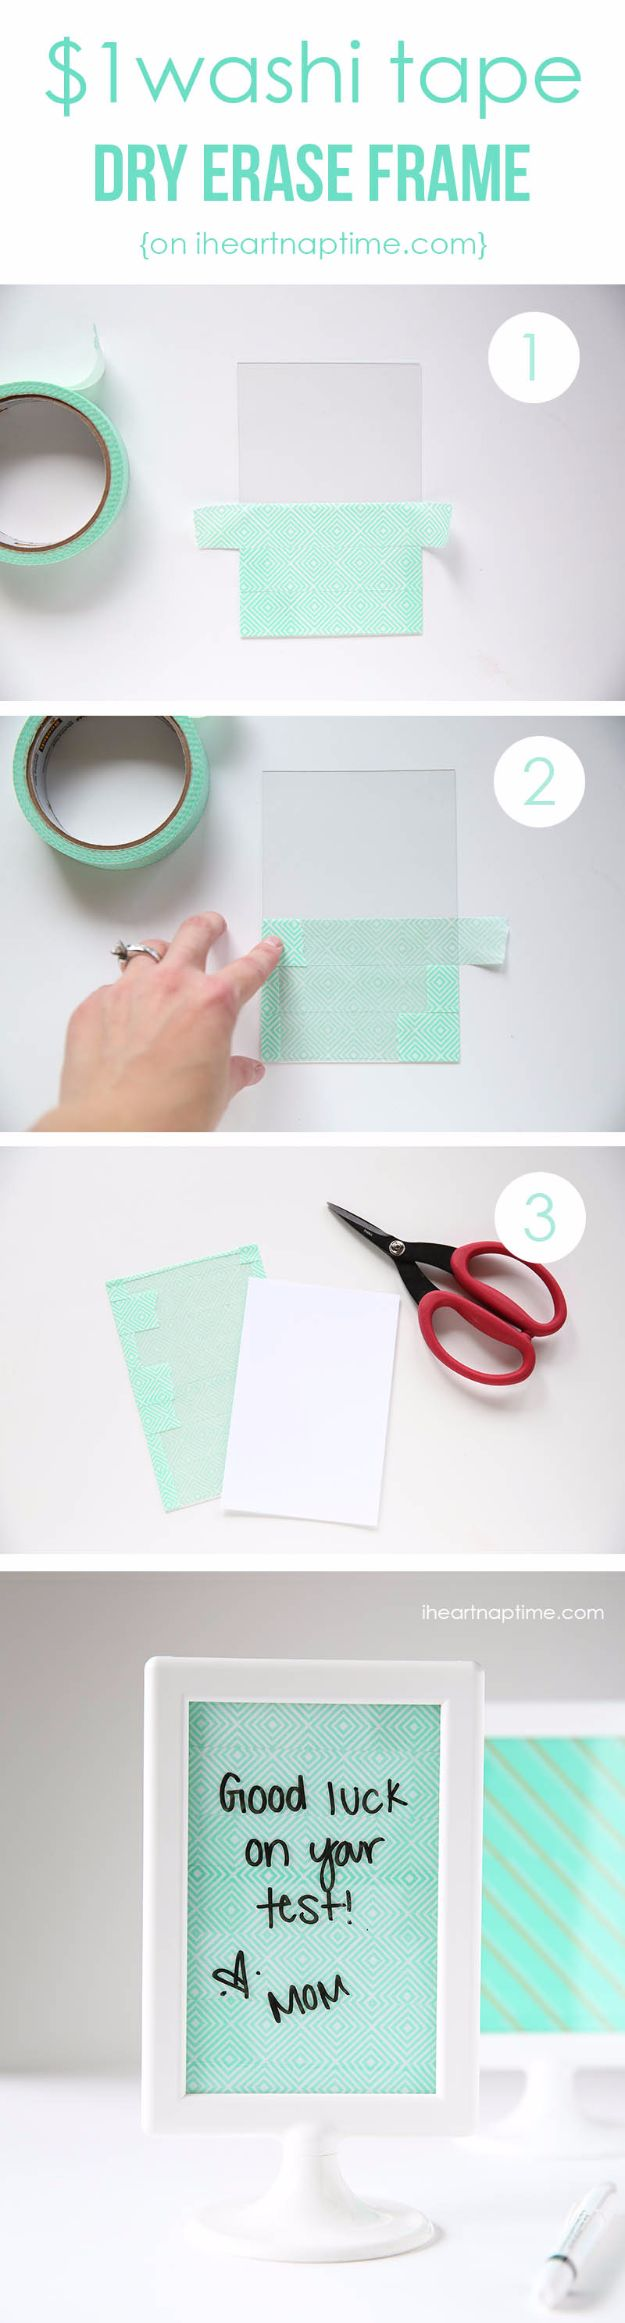 DIY School Supplies - DIY Erase Frame - Easy Crafts and Do It Yourself Ideas for Back To School - Pencils, Notebooks, Backpacks and Fun Gear for Going Back To Class - Creative DIY Projects for Cheap School Supplies - Cute Crafts for Teens and Kids http://diyprojectsforteens.com/diy-back-to-school-supplies